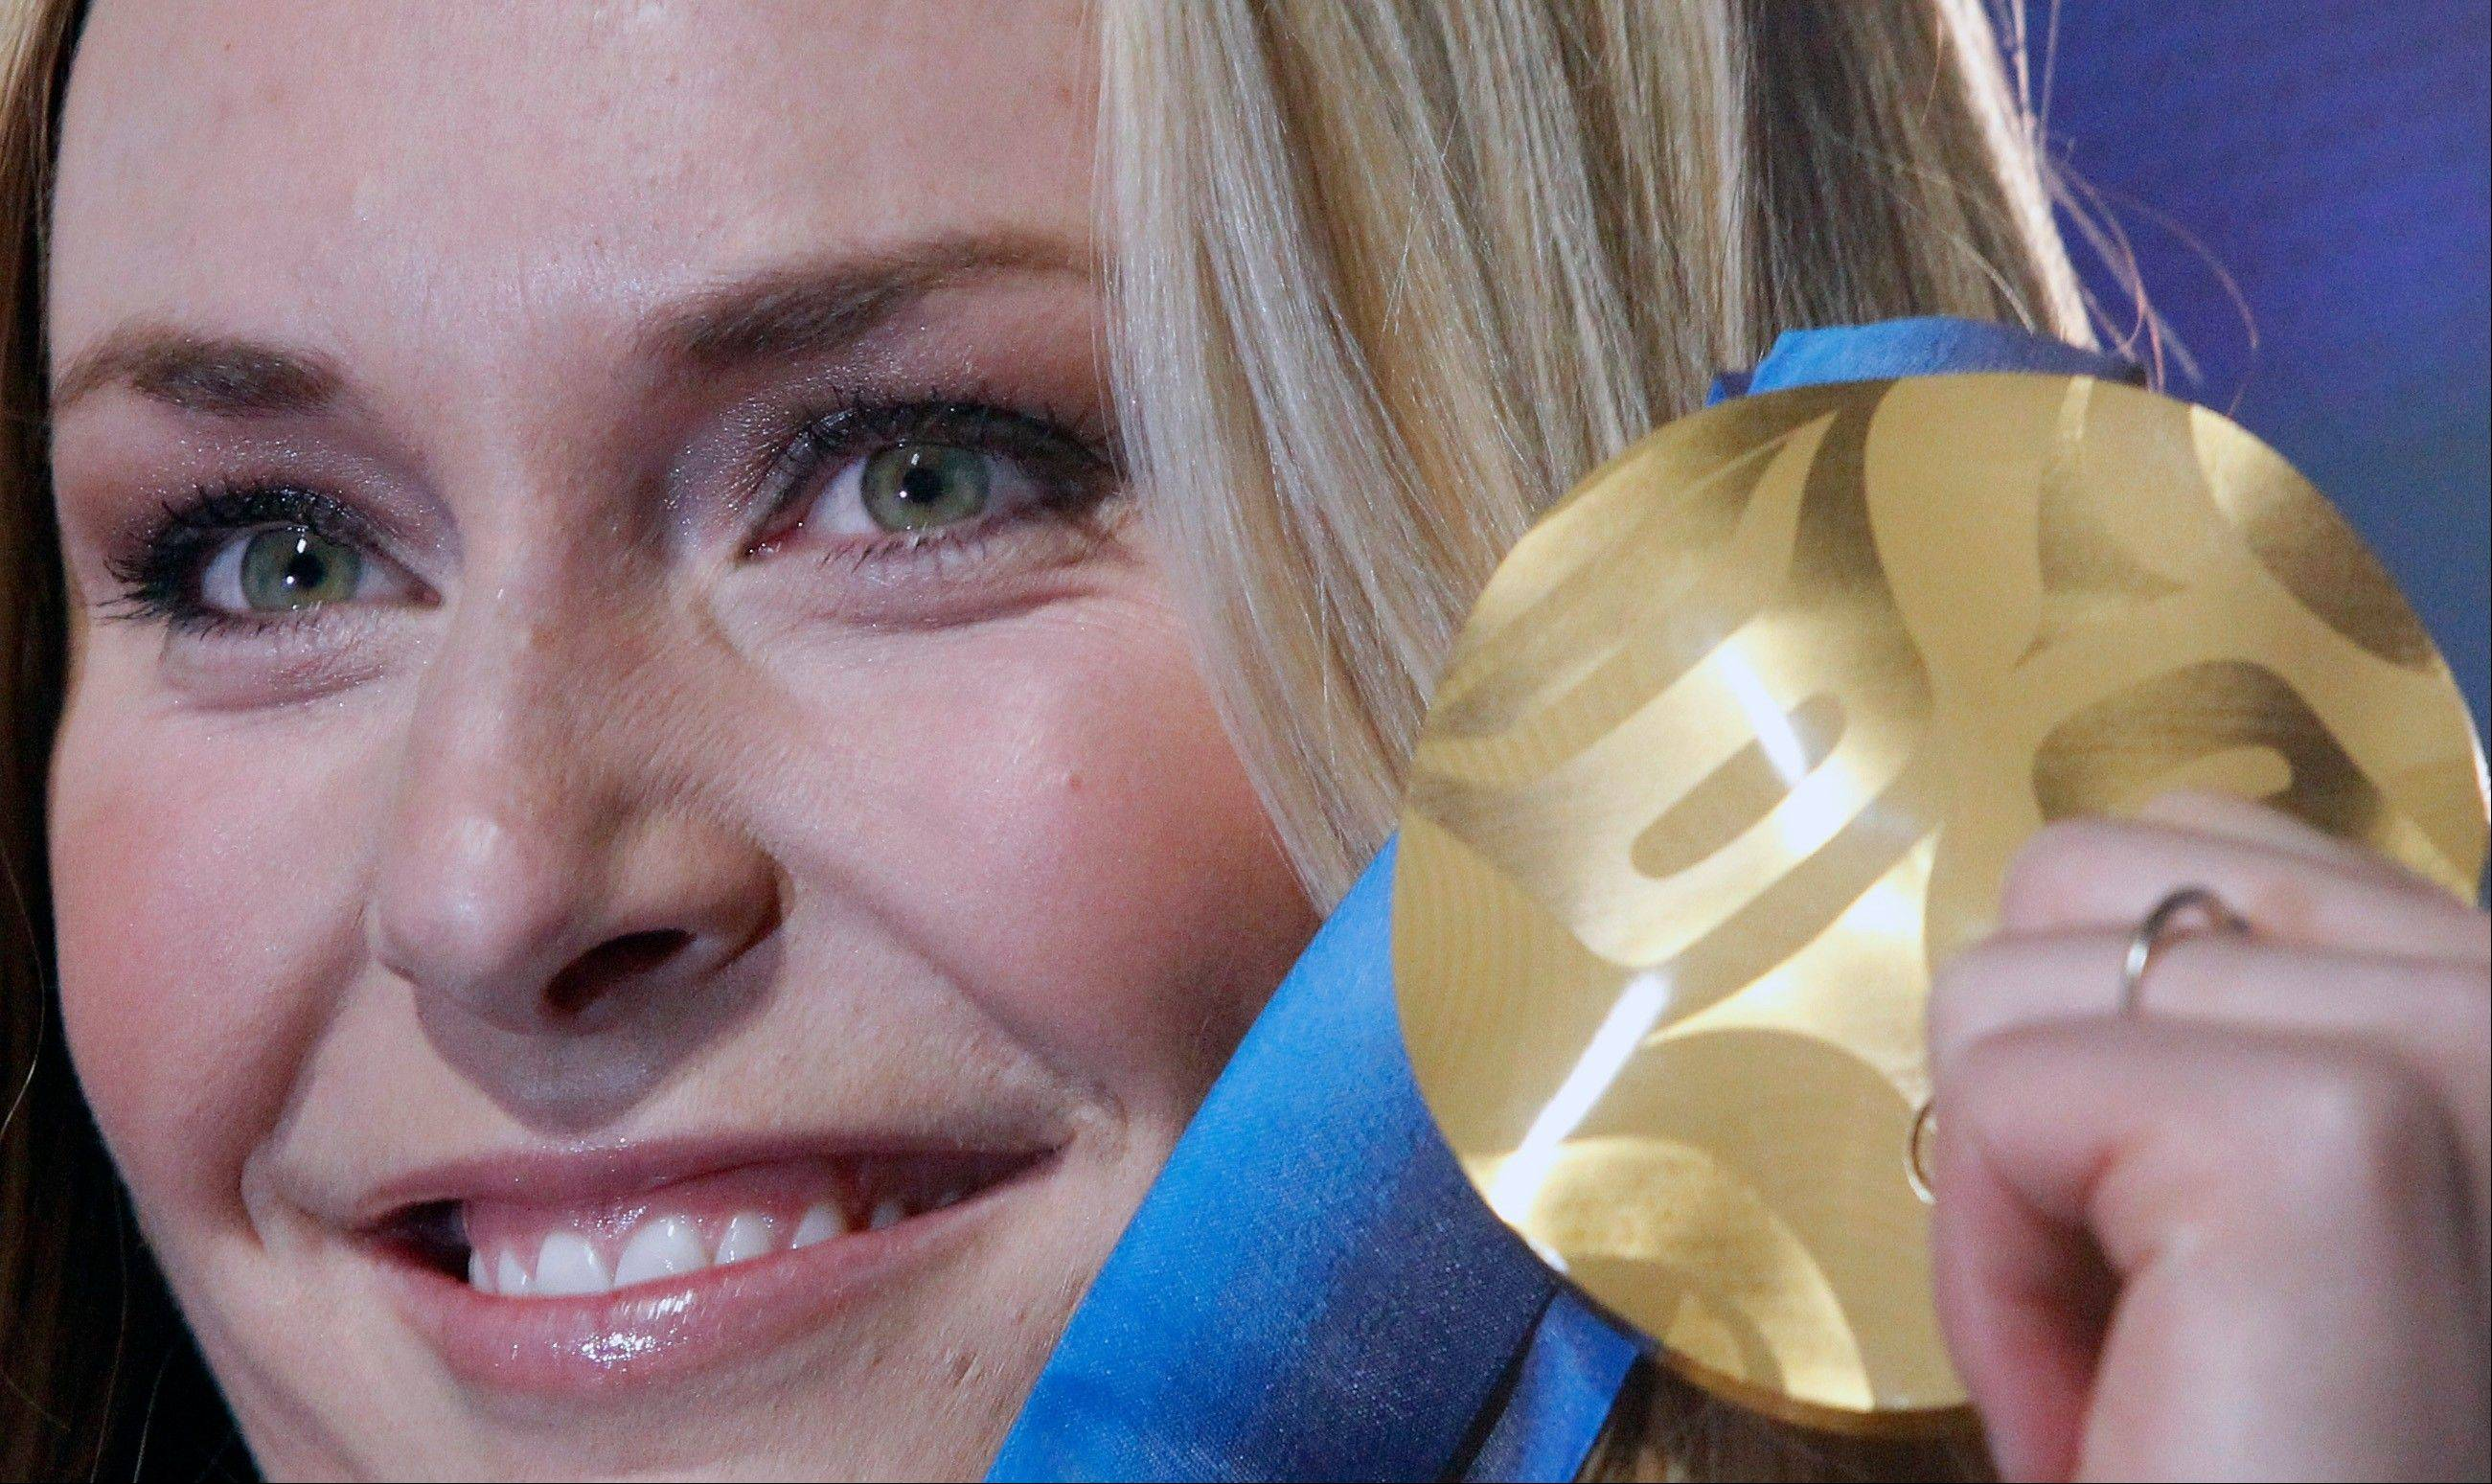 Lindsey Vonn will miss the Sochi Olympics because of a right knee injury, leaving the Winter Games without one of its biggest stars. The 29-year-old American won two medals at the 2010 Vancouver Olympics, including a gold in the downhill. She is also a four-time overall World Cup champion and the biggest name in Alpine skiing.